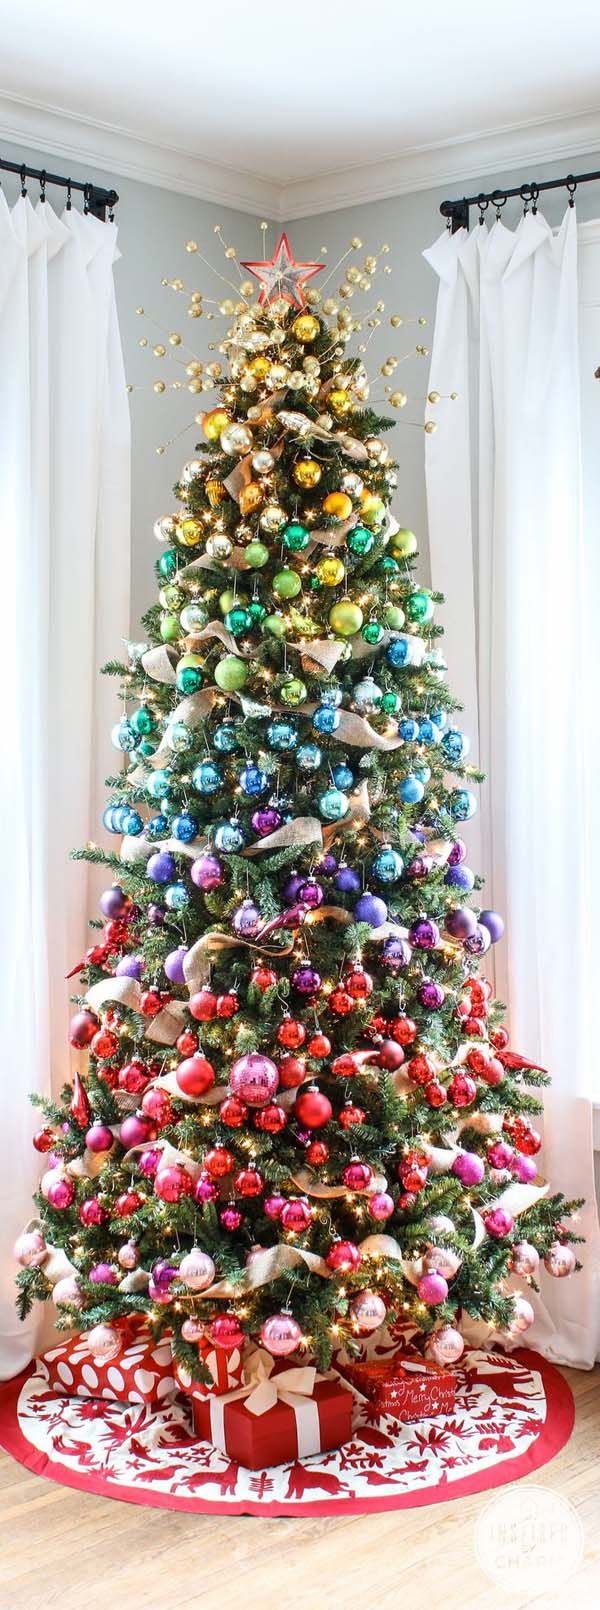 Incroyable 50 Most Beautiful Christmas Trees | Christmas Celebrations